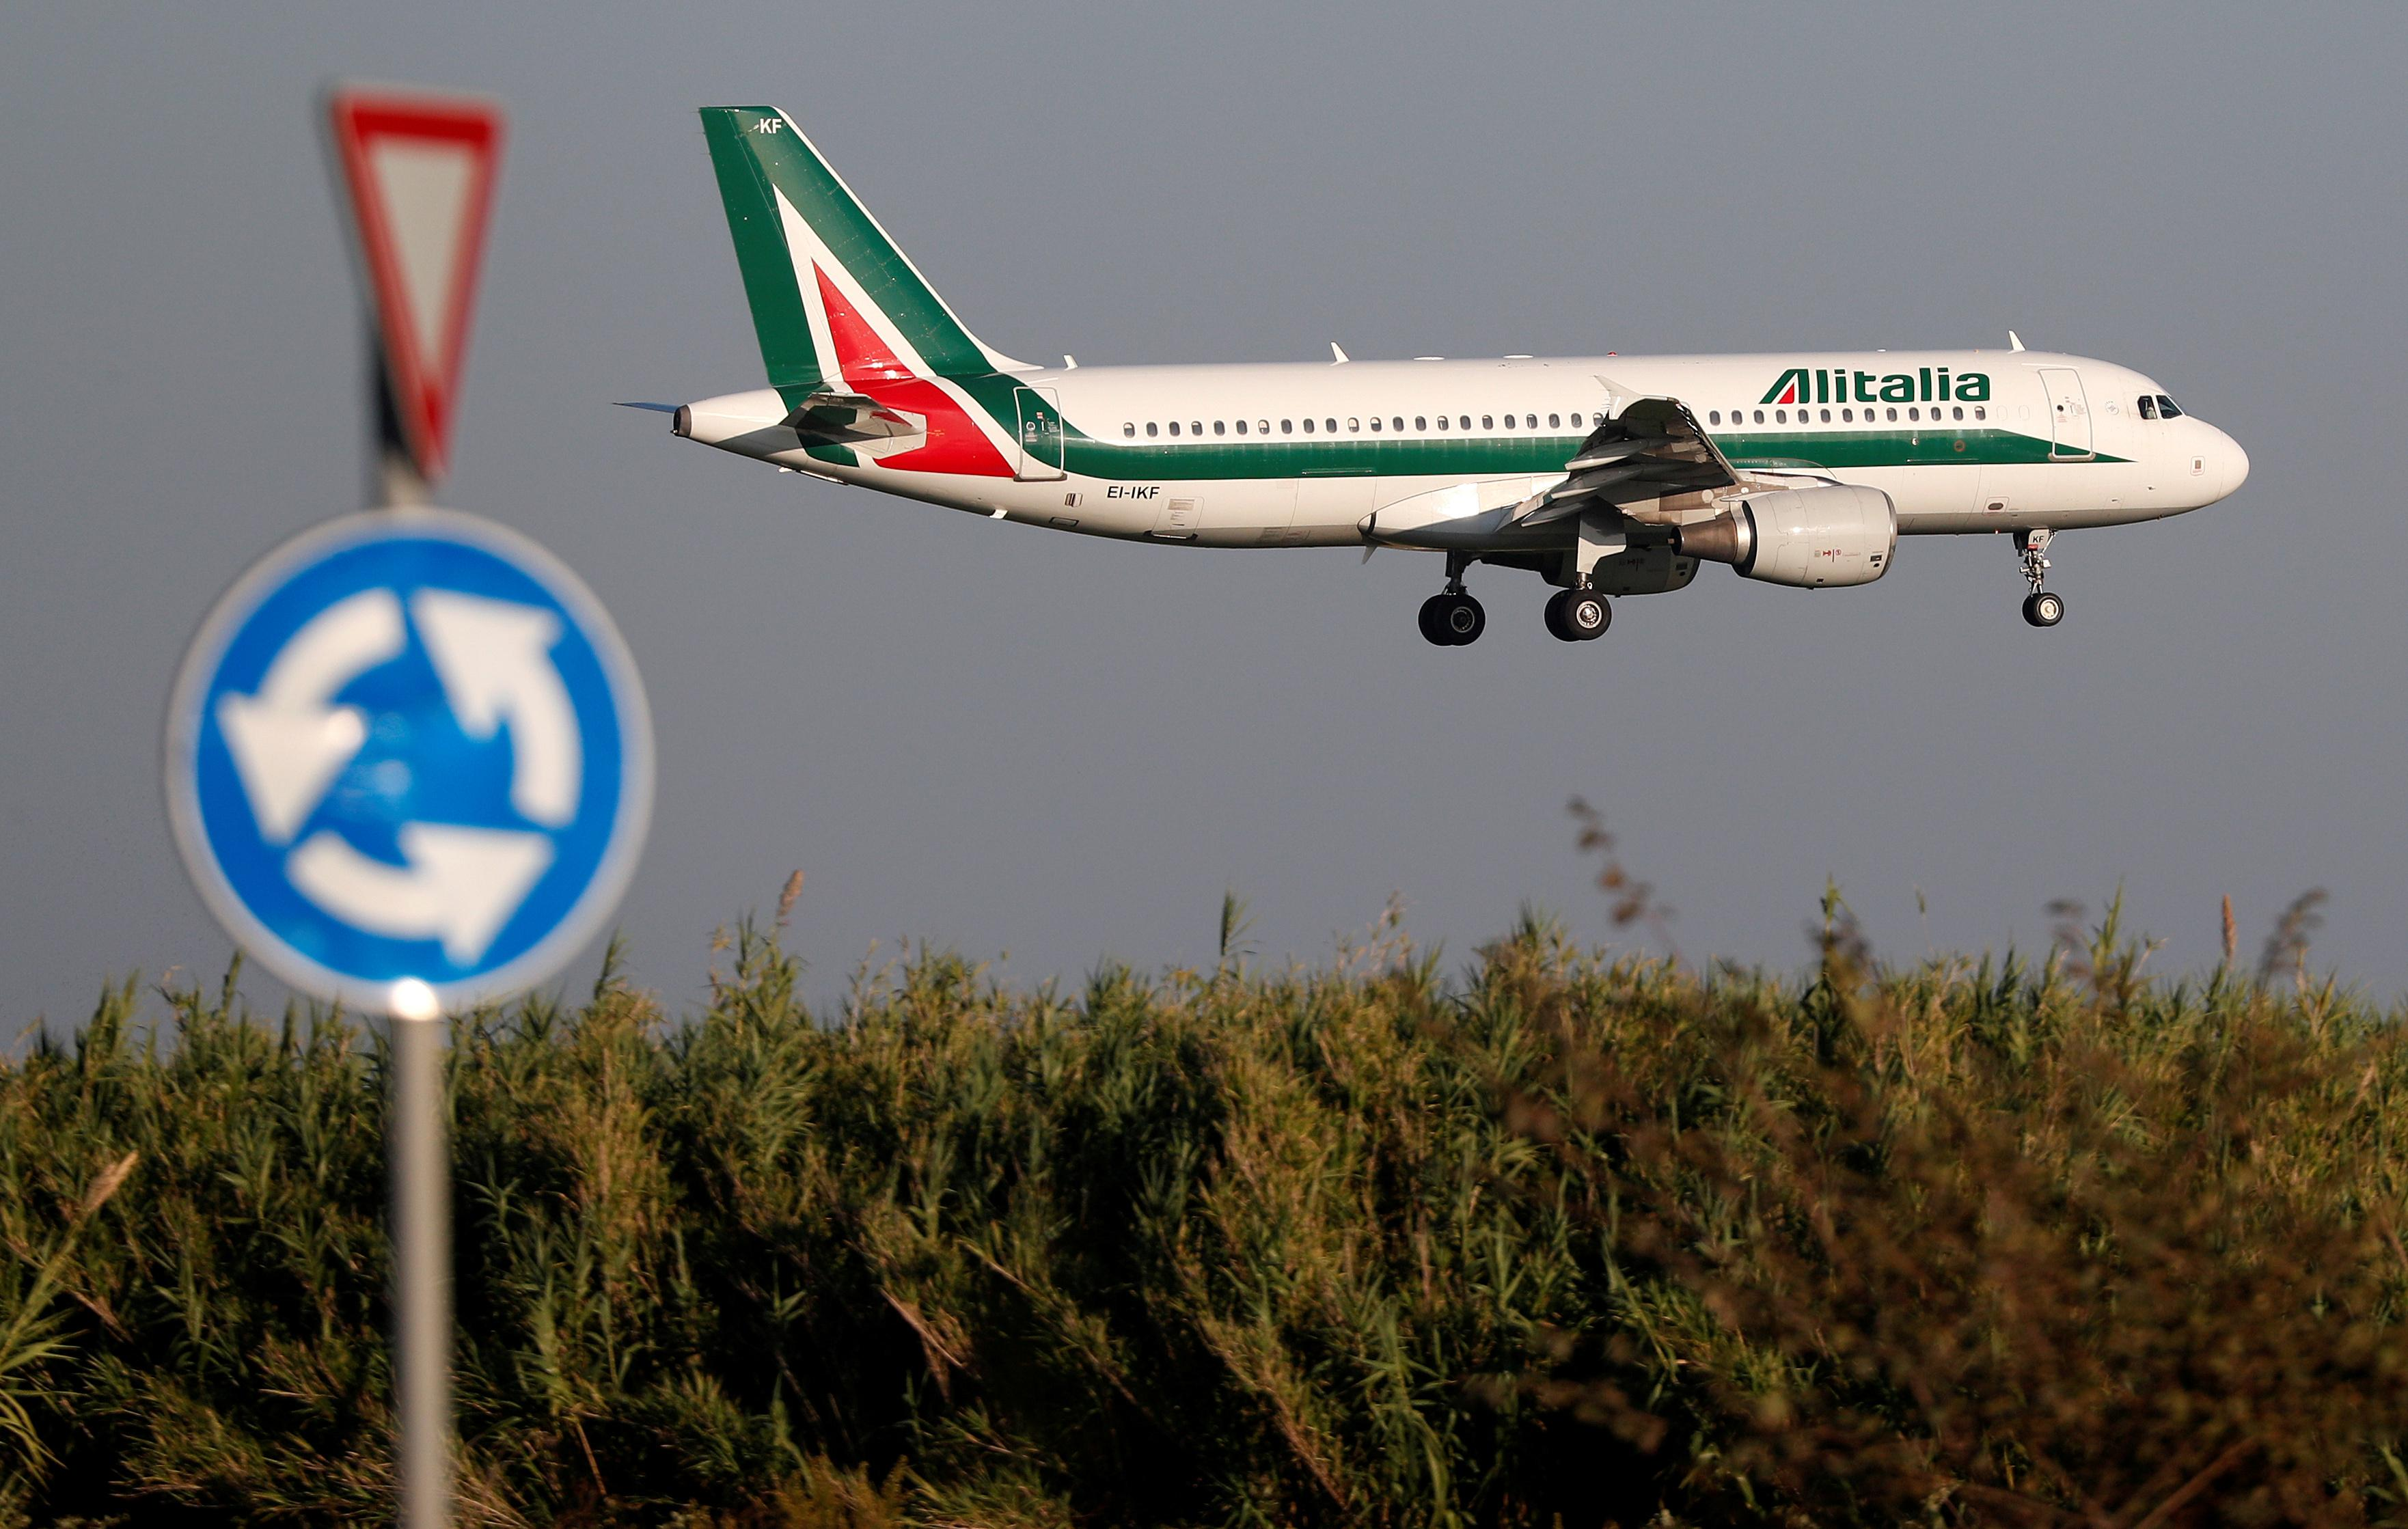 Binding Alitalia offer can be made by October 15 deadline: Italy...